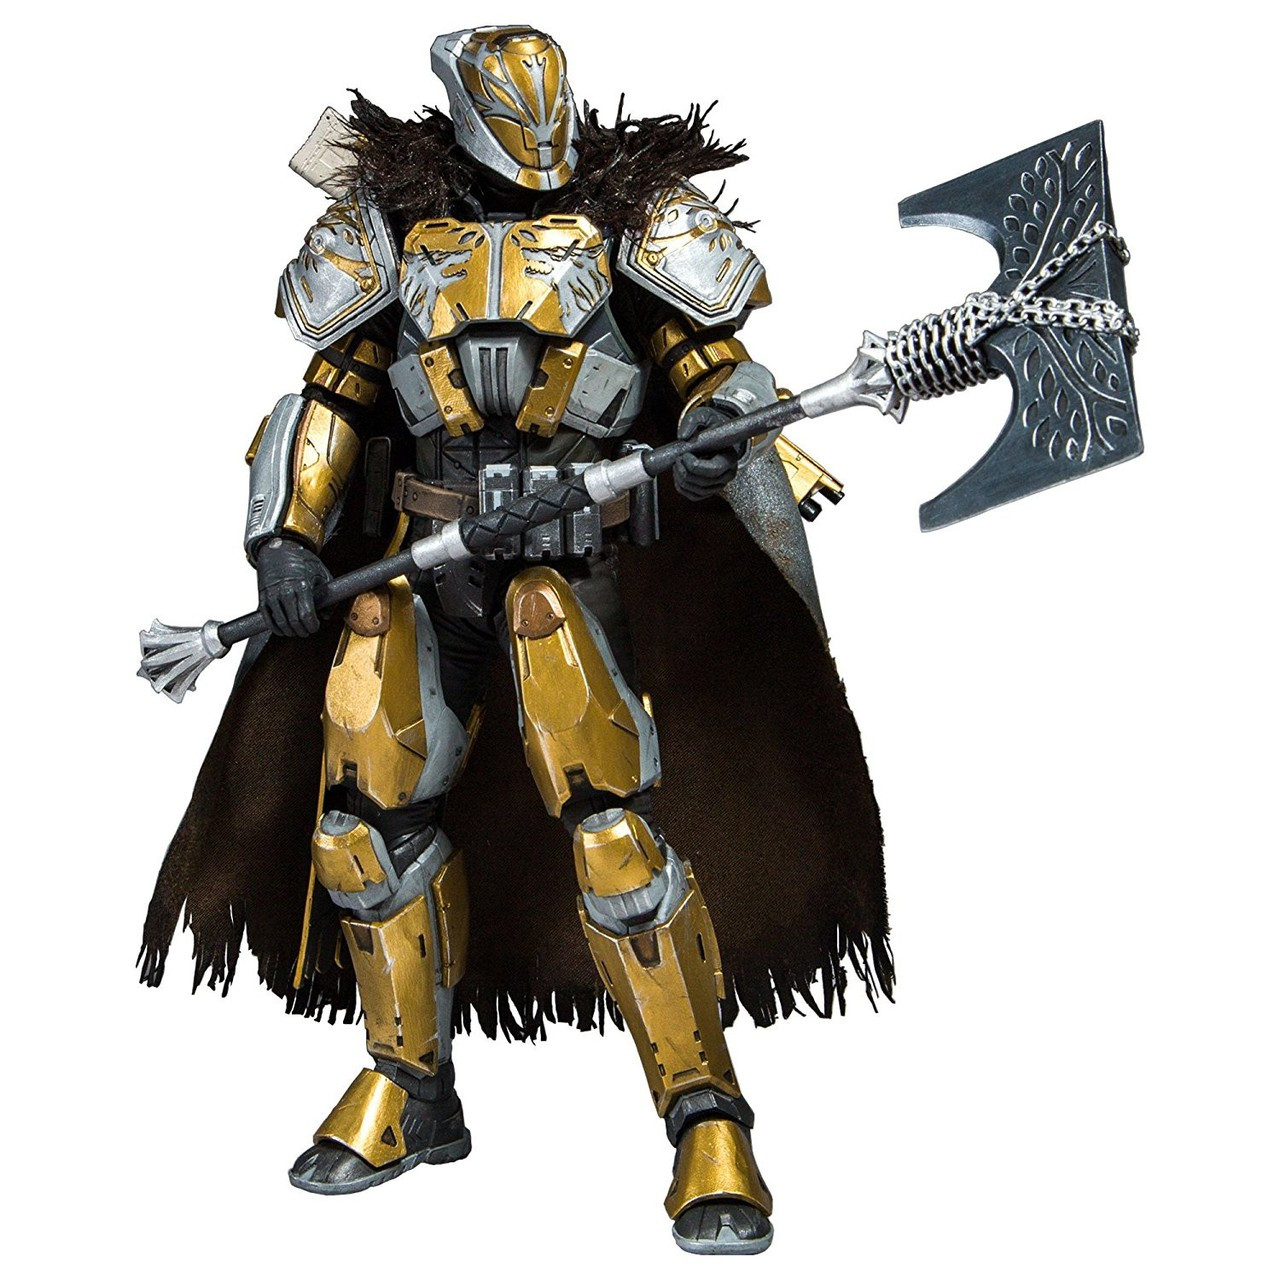 McFarlane Toys Destiny Lord Saladin 10-inch Deluxe Figure